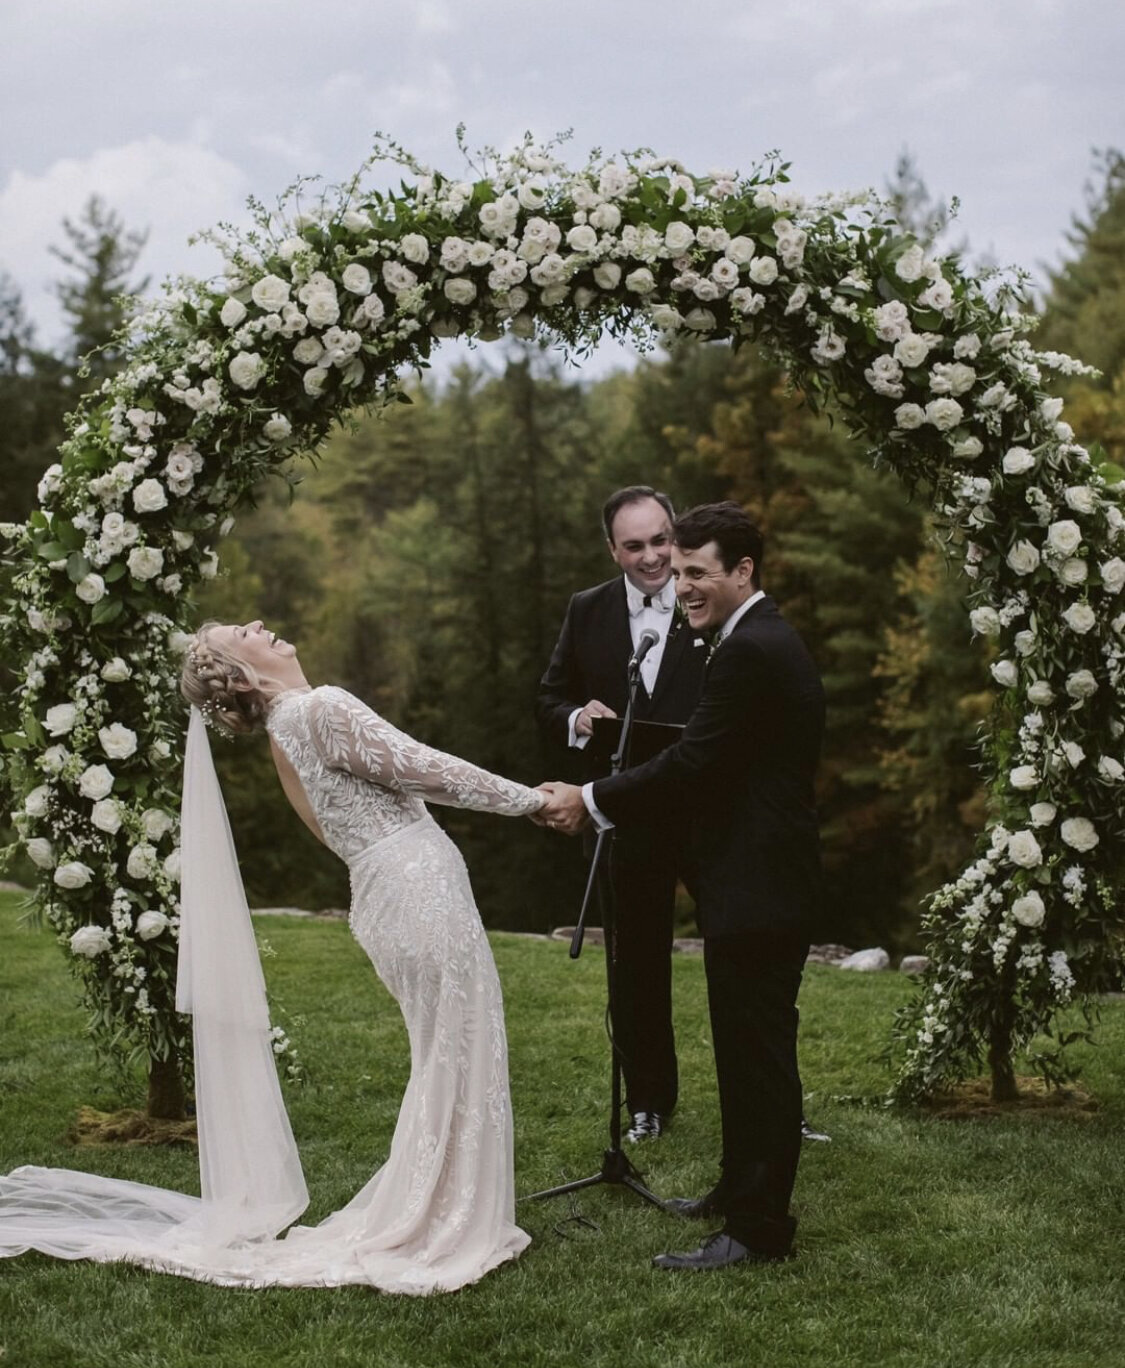 Wedding Planning Plus is Upstate New York's top wedding planning team.  Serving Albany, Saratoga Springs, Lake George, the Adirondacks, and the Catskills, the Finger Lakes, Southern Vermont, and the Berkshires.